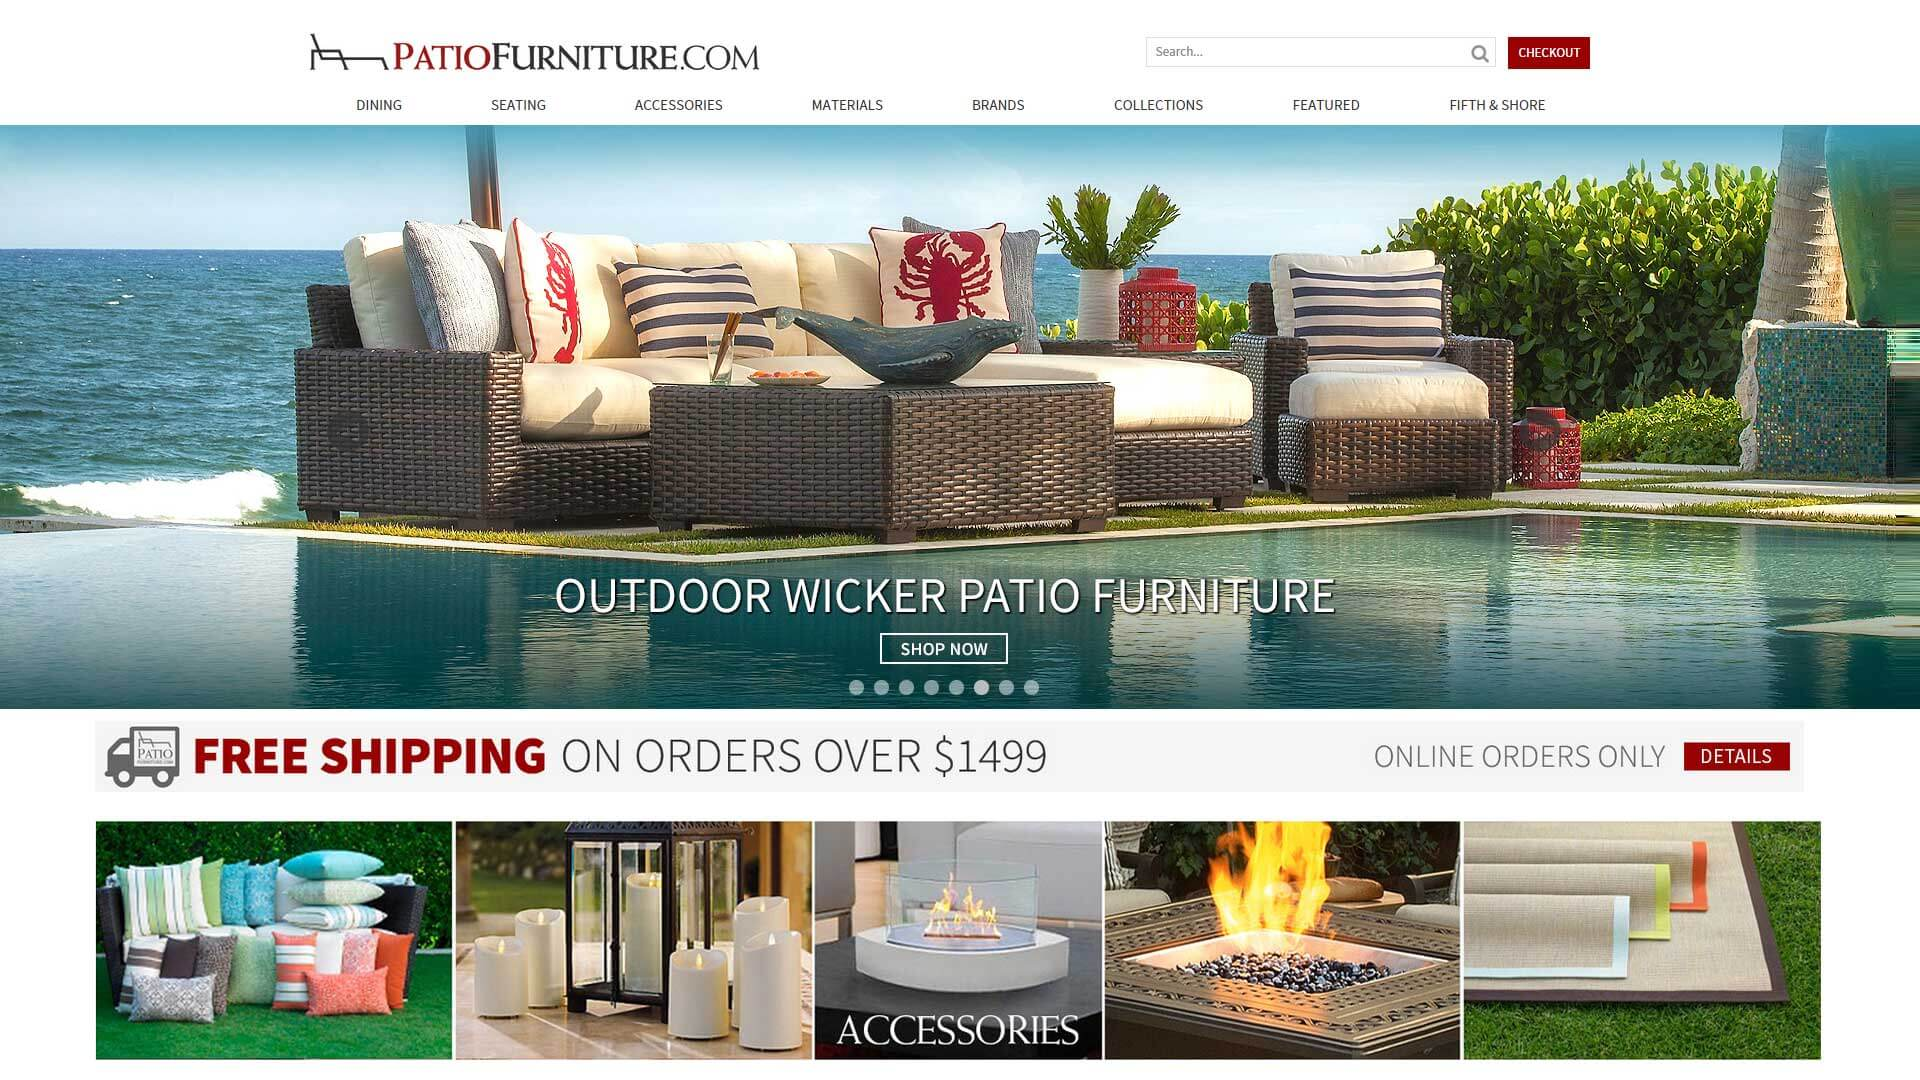 PatioFurniture.com